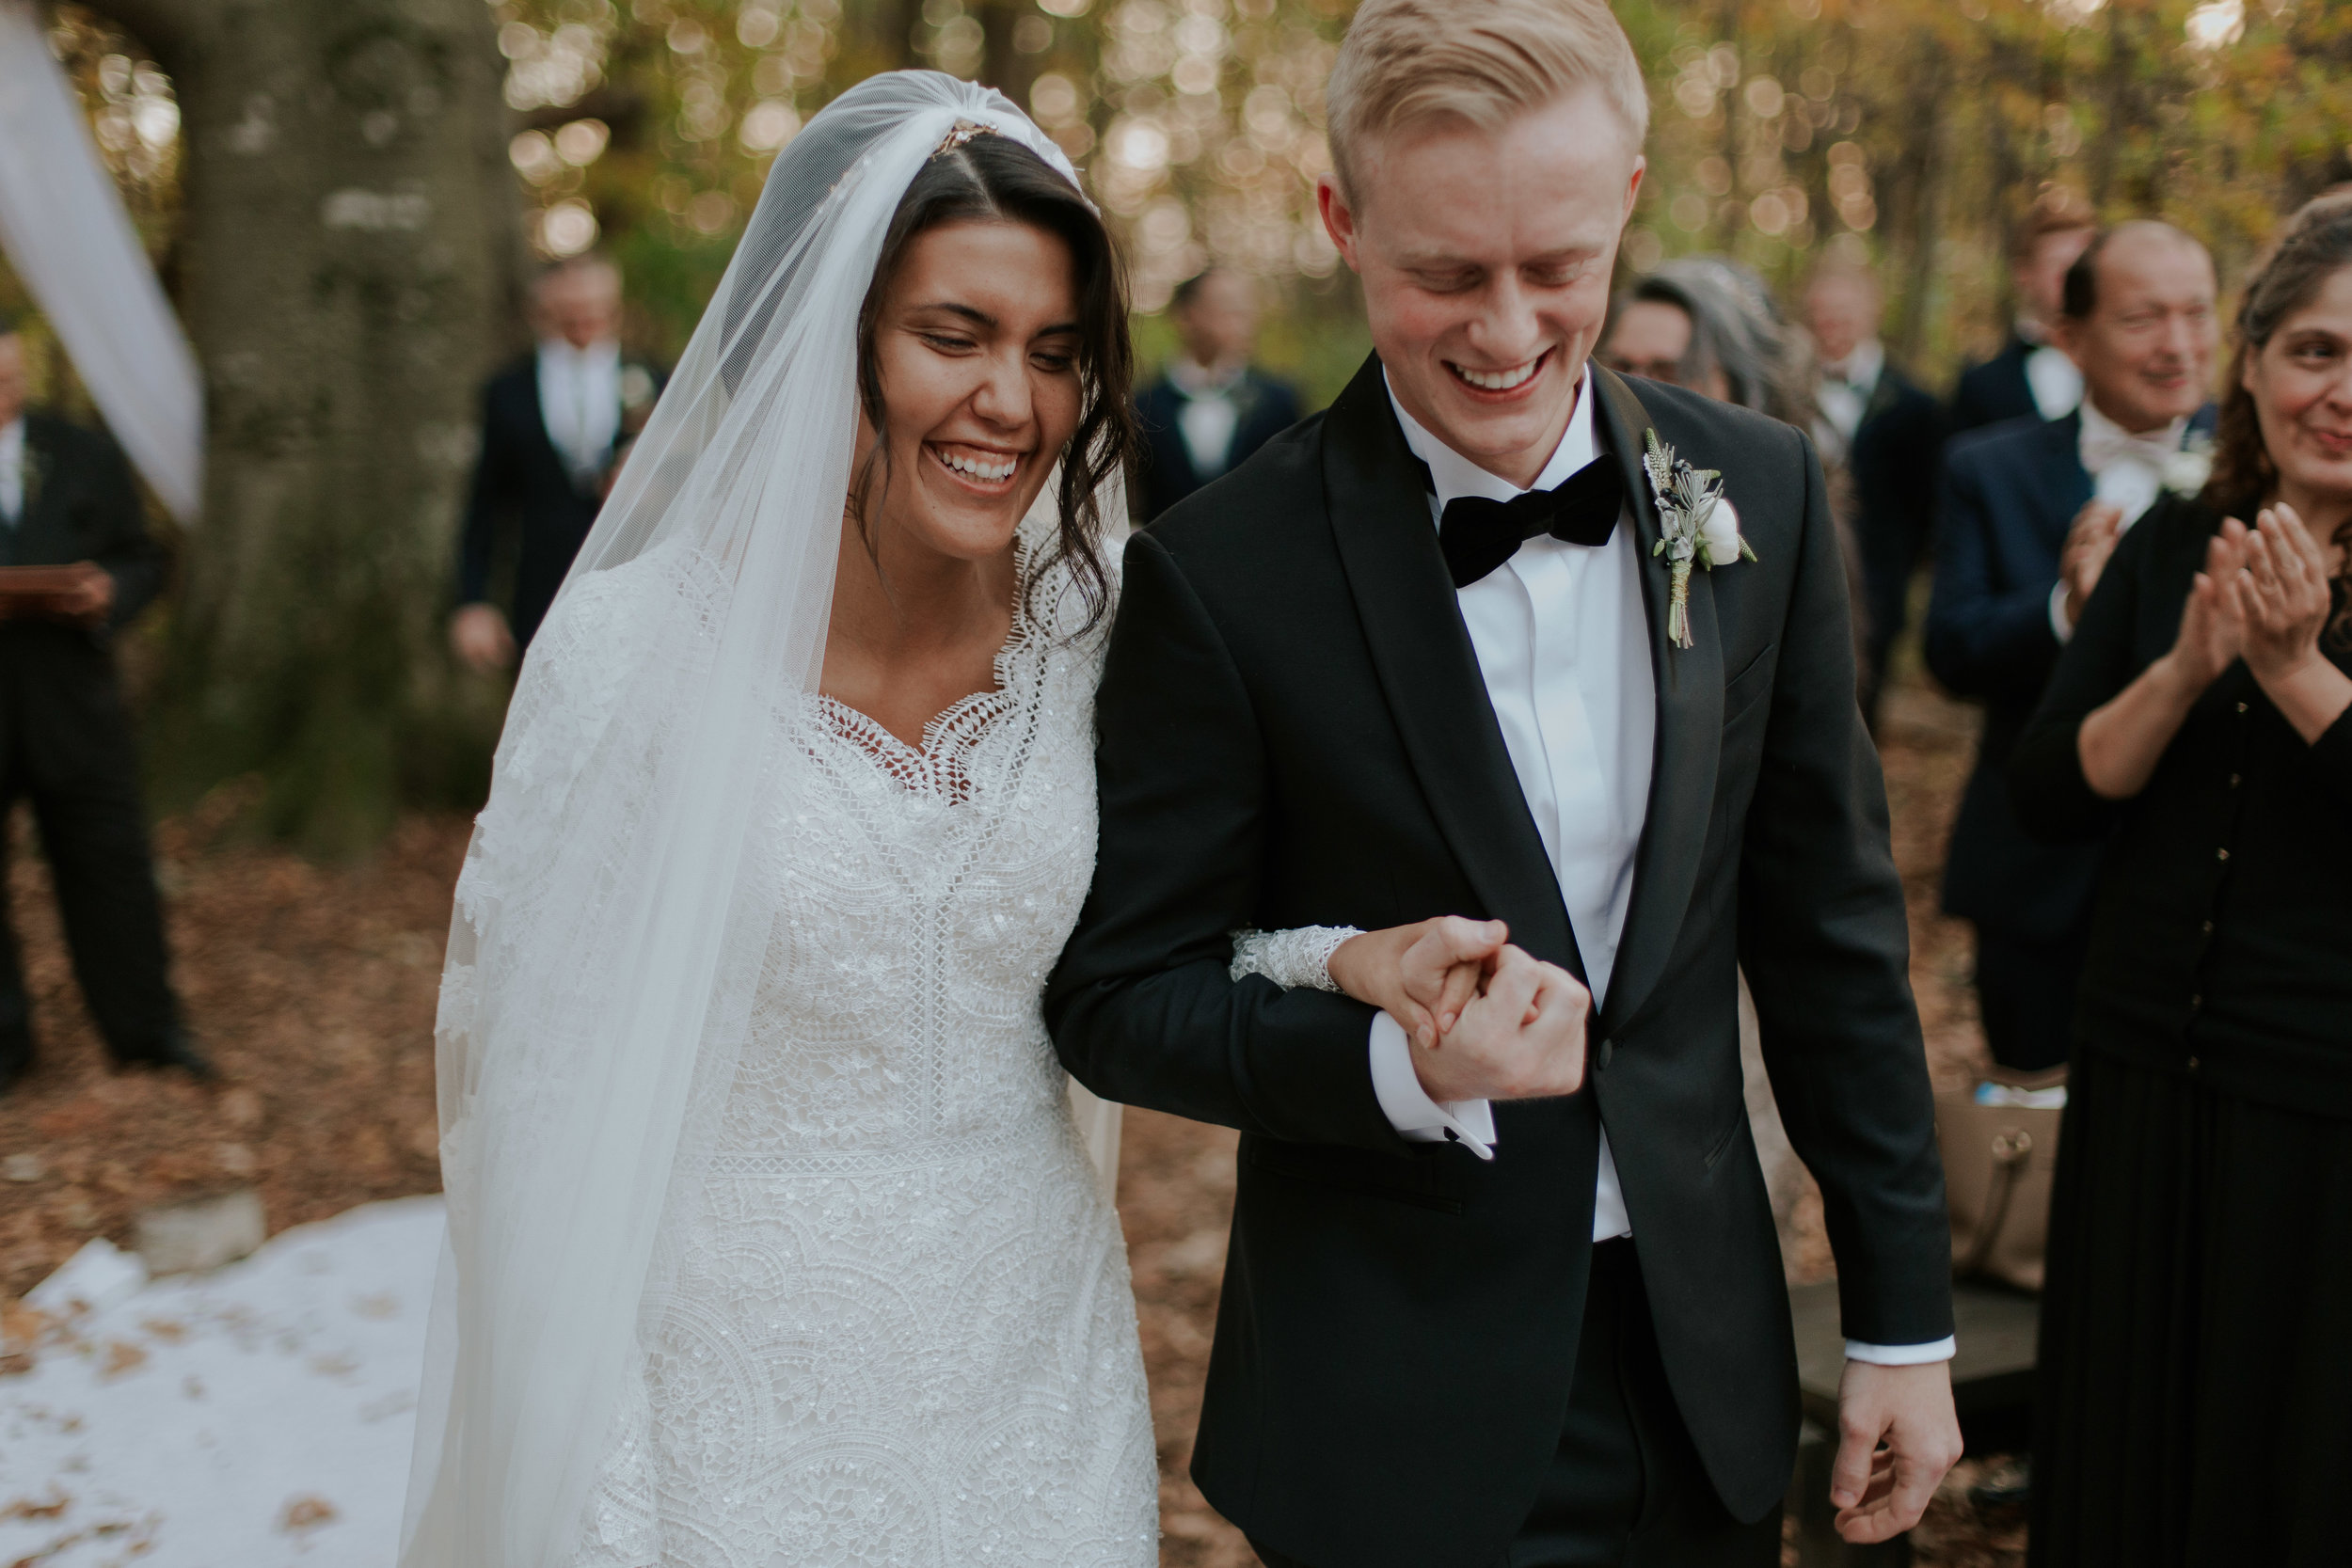 SPARKS WEDDING - October 20th, 2017